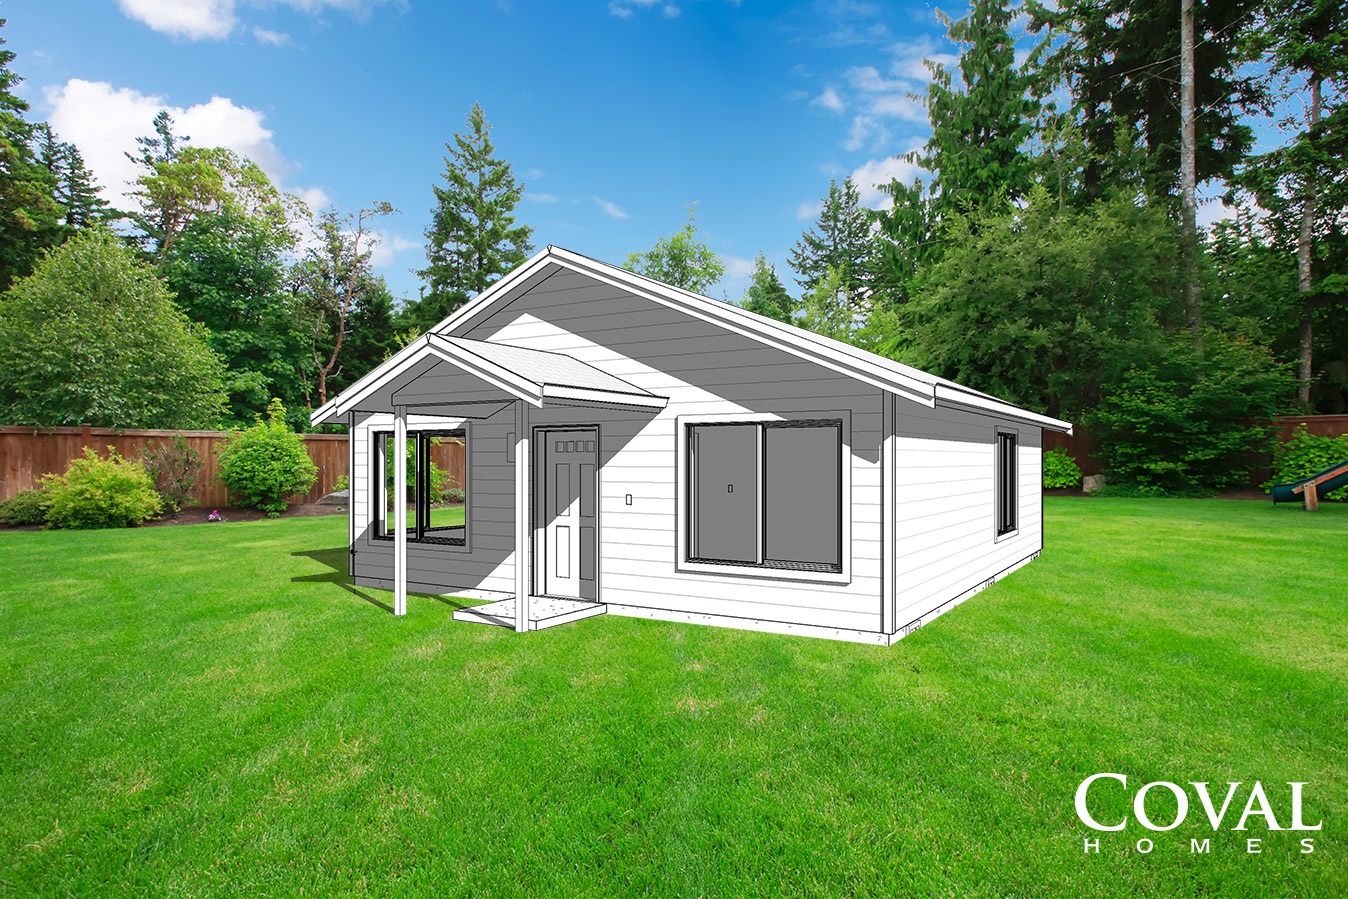 Built on Your Lot - Coval Homes ADU